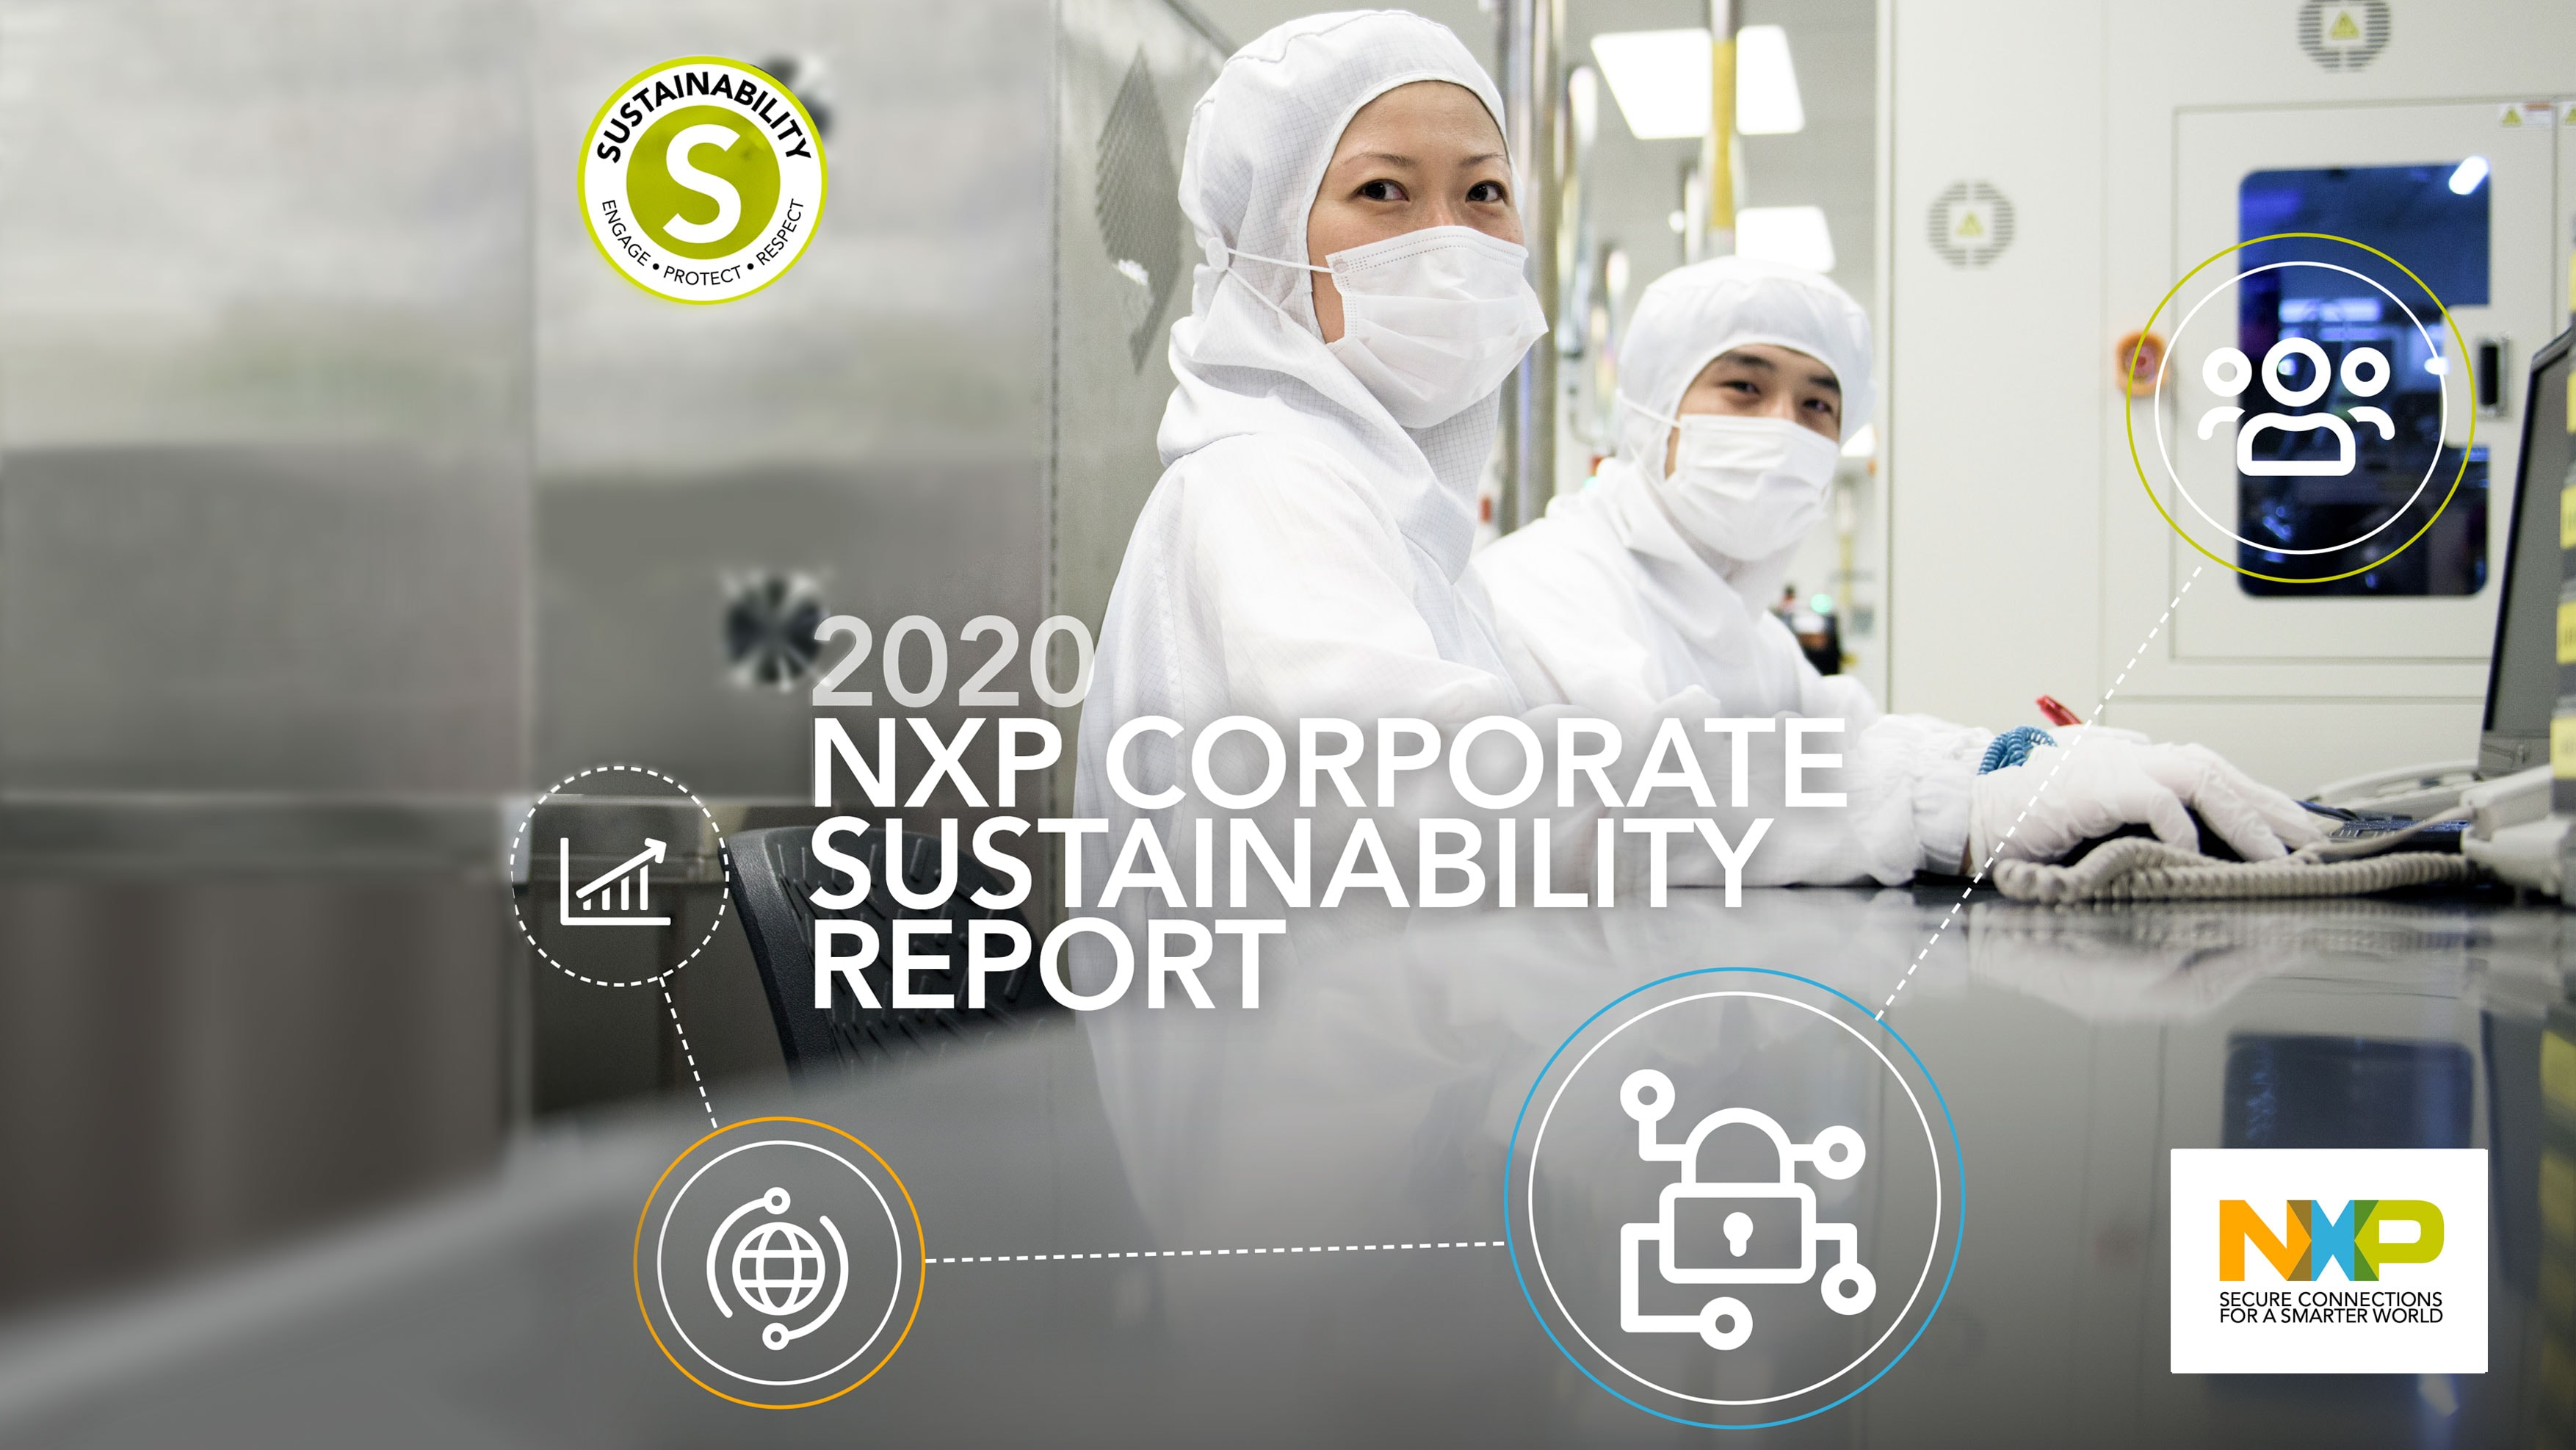 Corporate Sustainability Report Image